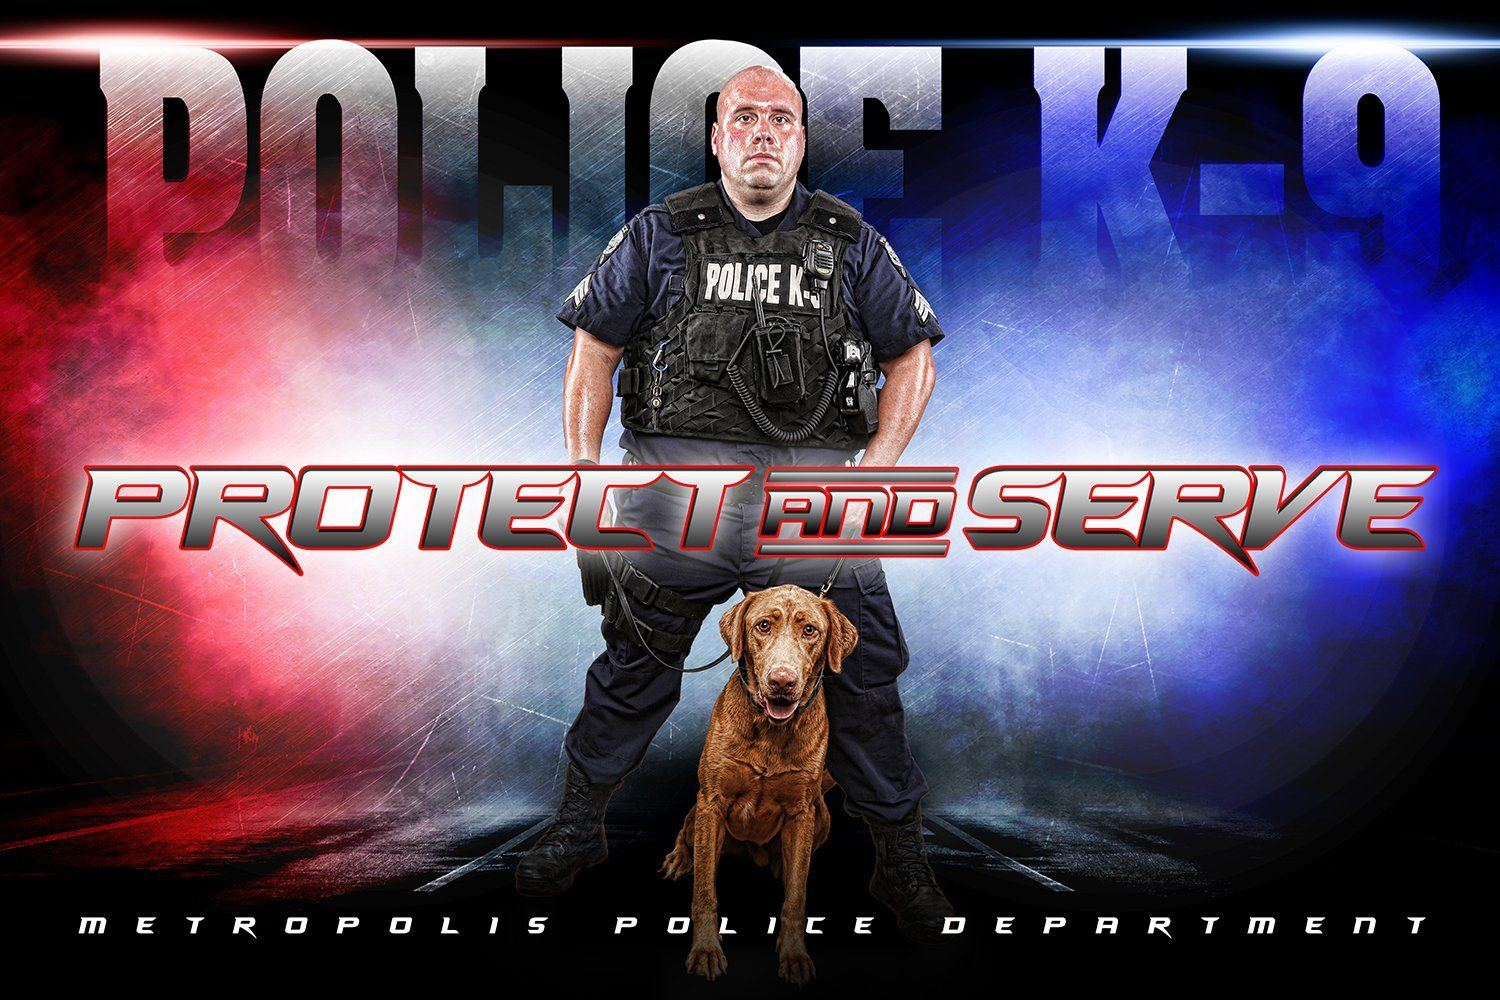 Police - V.3 - Heroes Series - Poster/Banner H-Photoshop Template - Photo Solutions